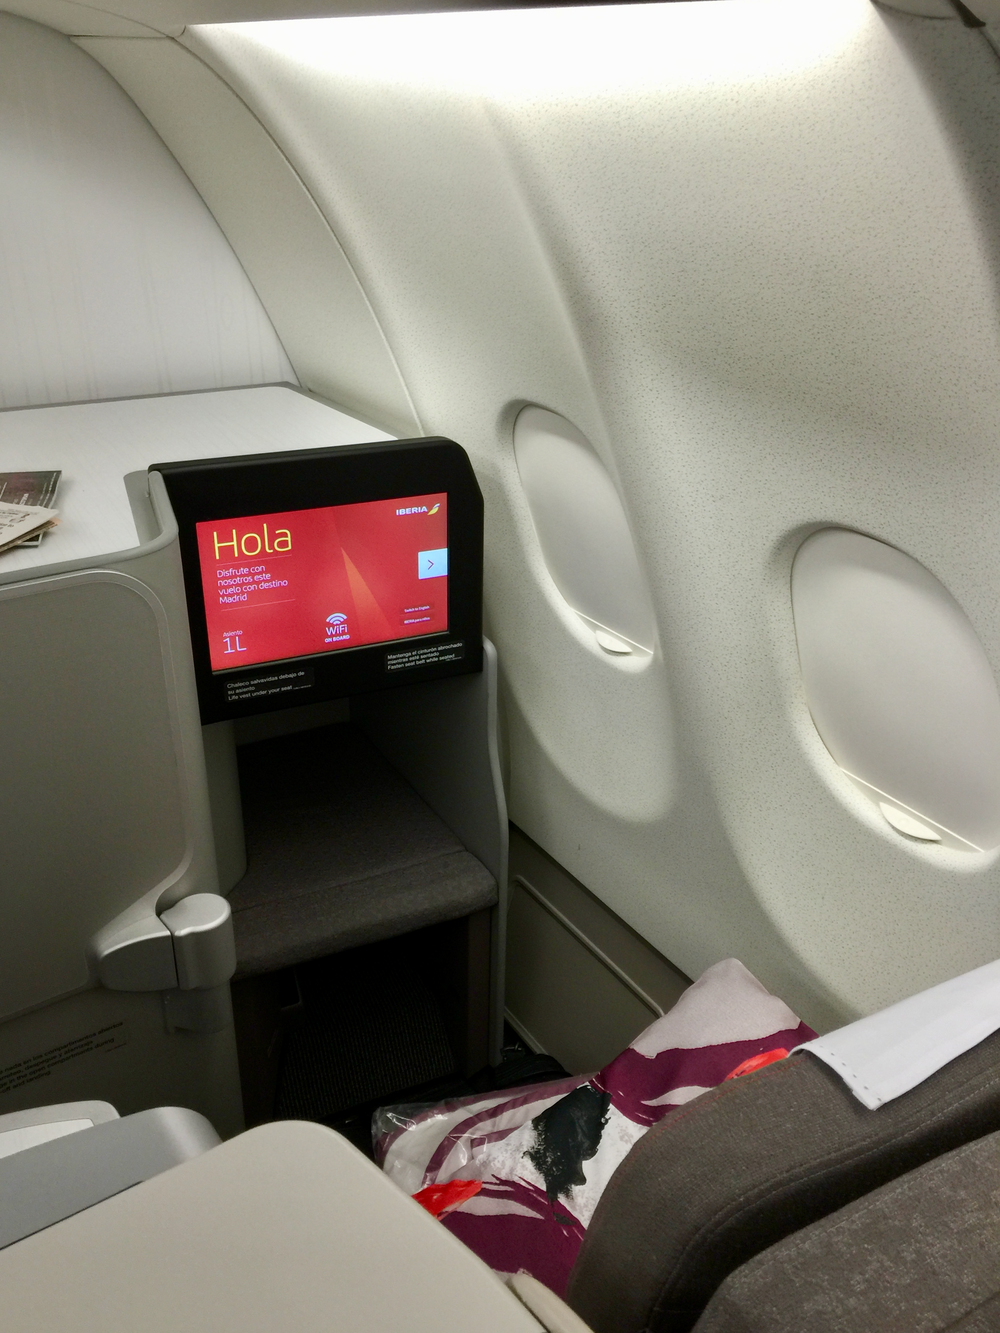 I flew from New York-JFK to Madrid in Iberia business class using AAdvantage miles  (click to enlarge).